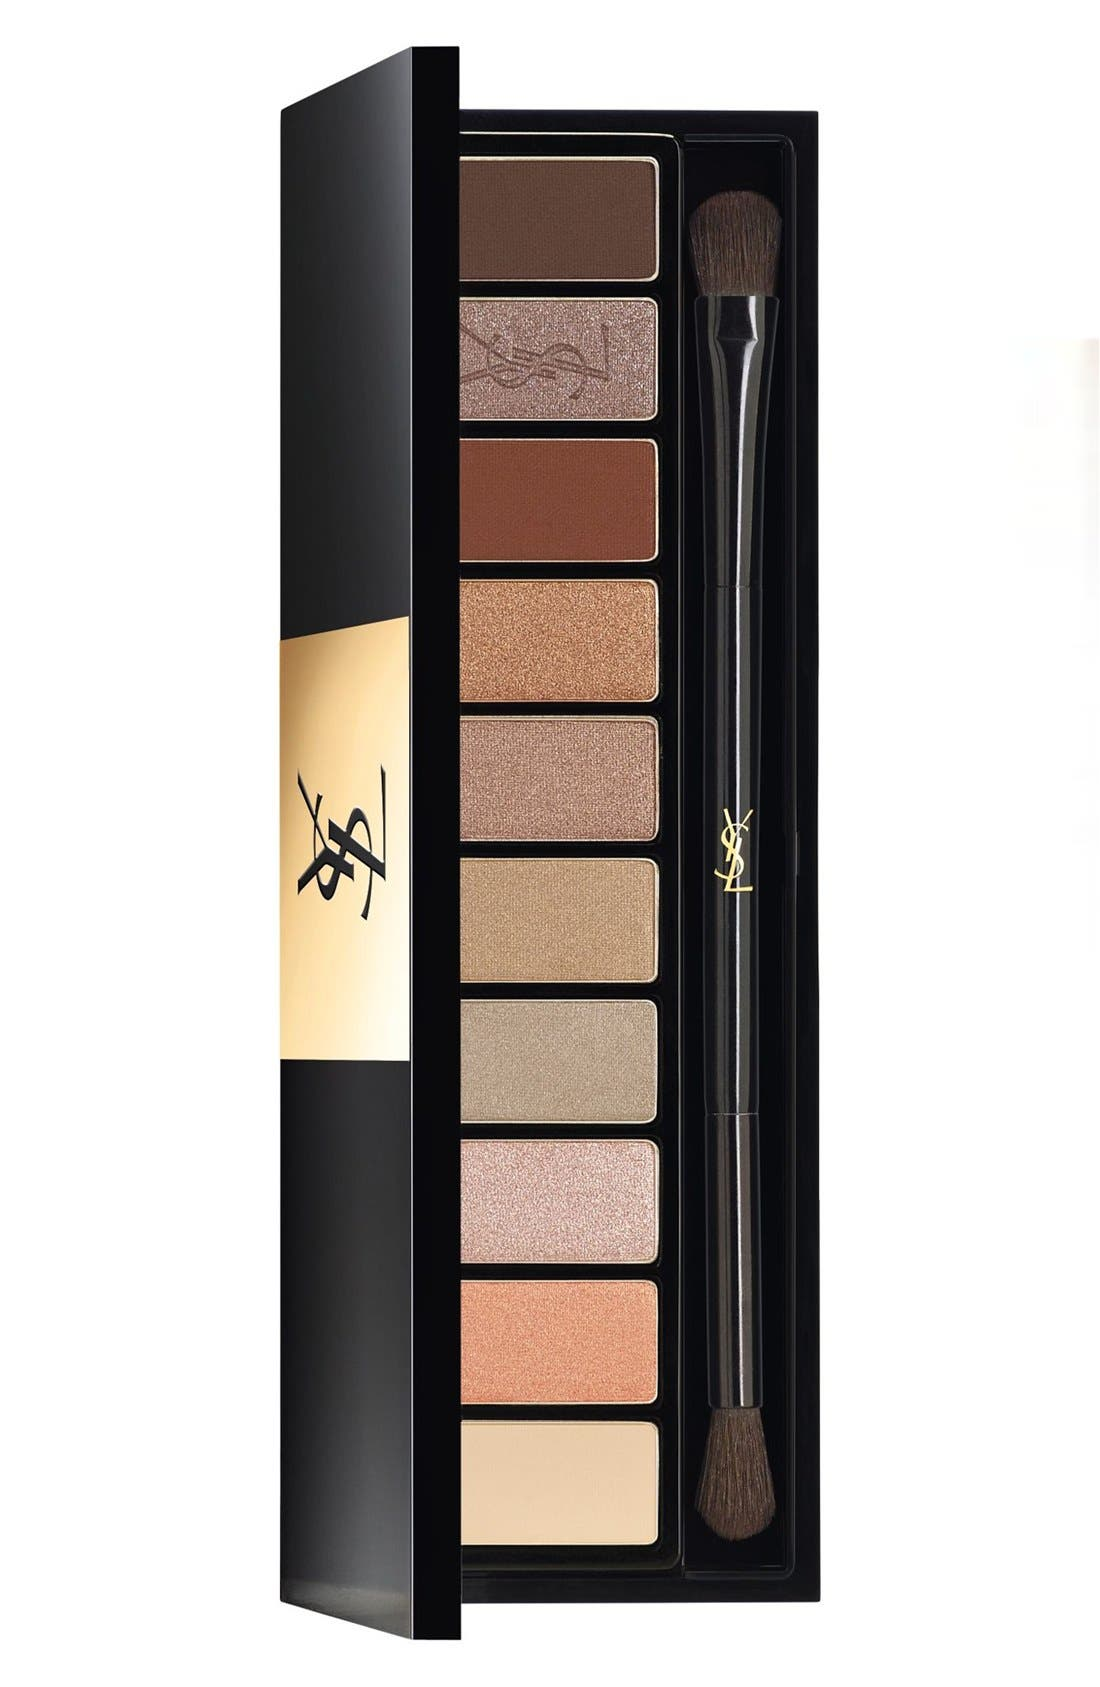 'Nude' Couture Variation Ten-Color Expert Eye Palette,                         Main,                         color, 01 NU